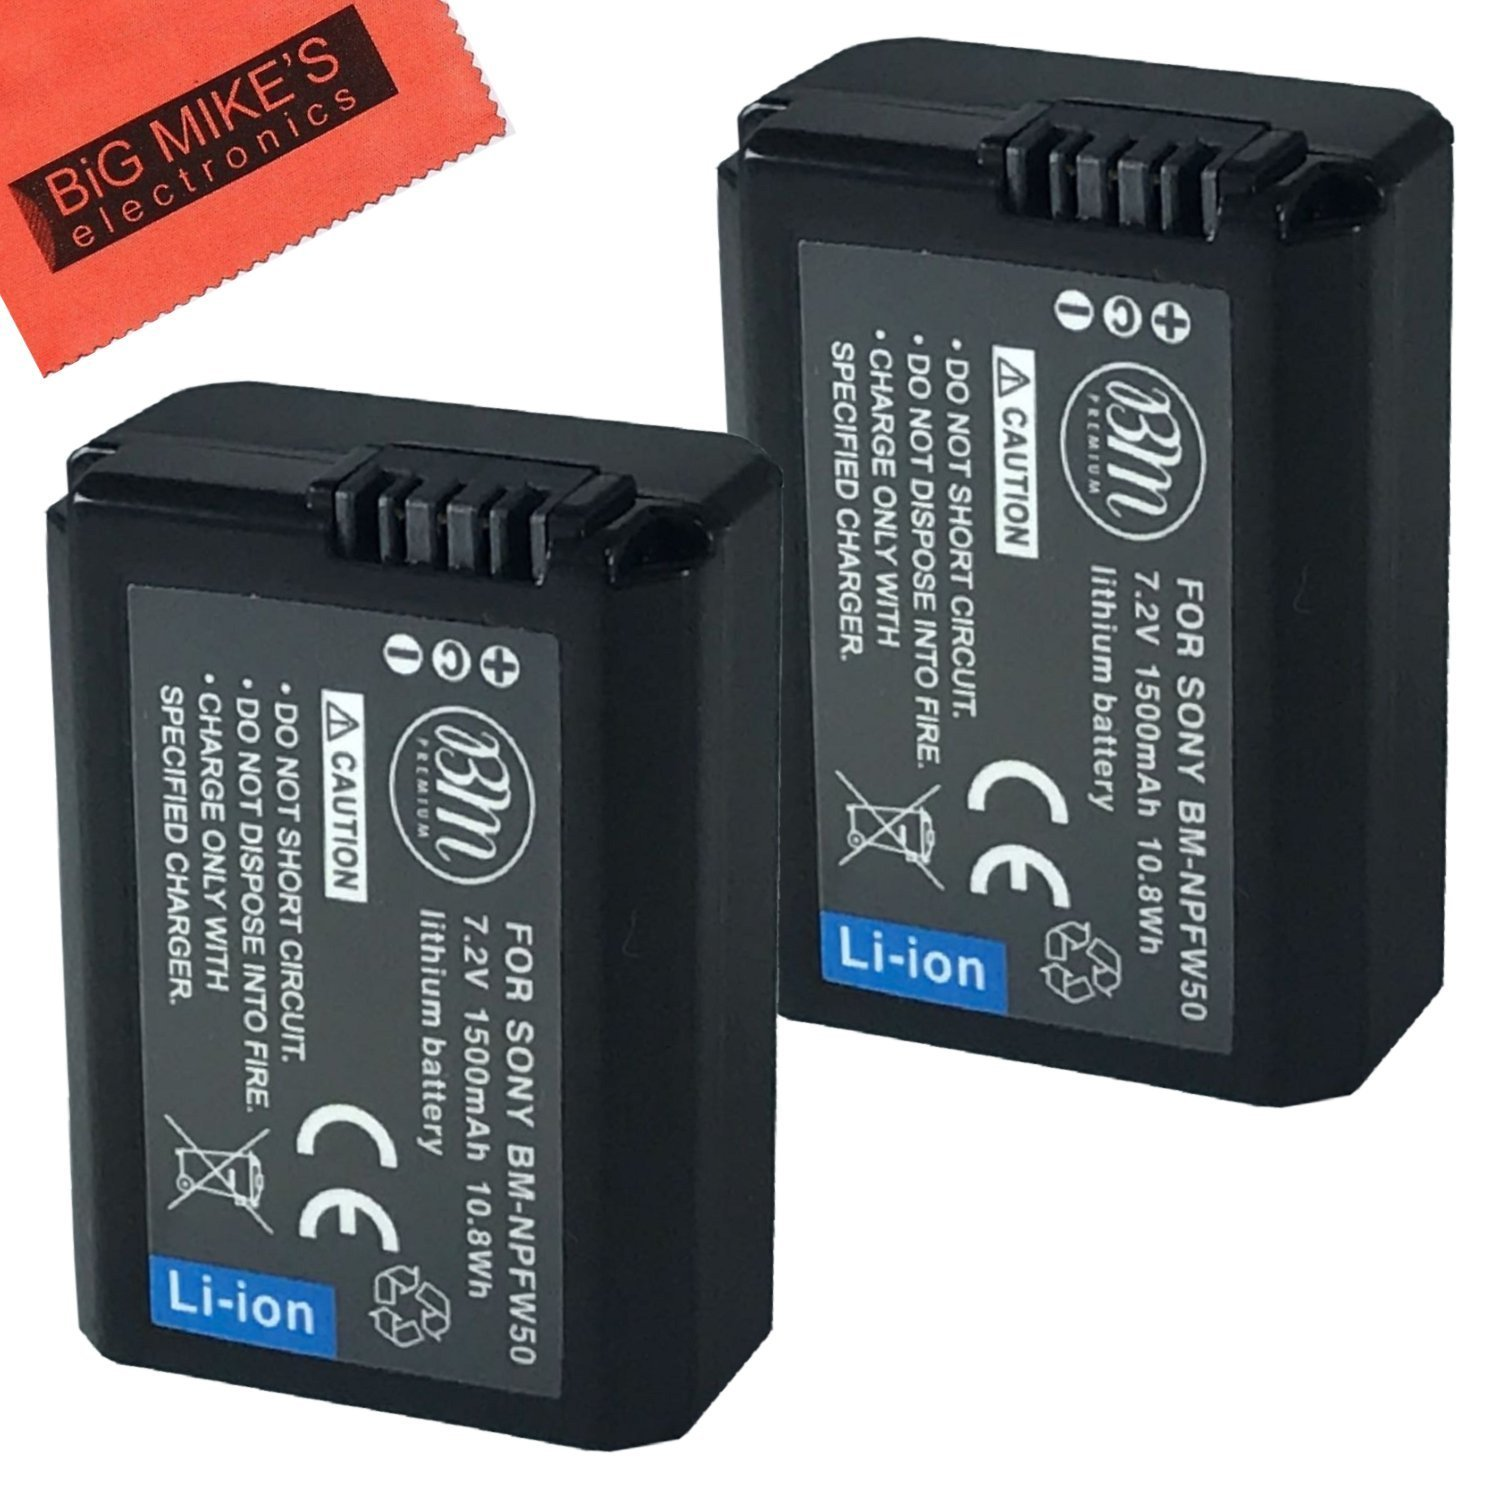 BM Premium 2 Pack of NP-FW50 Batteries for Sony Alpha Digital Cameras